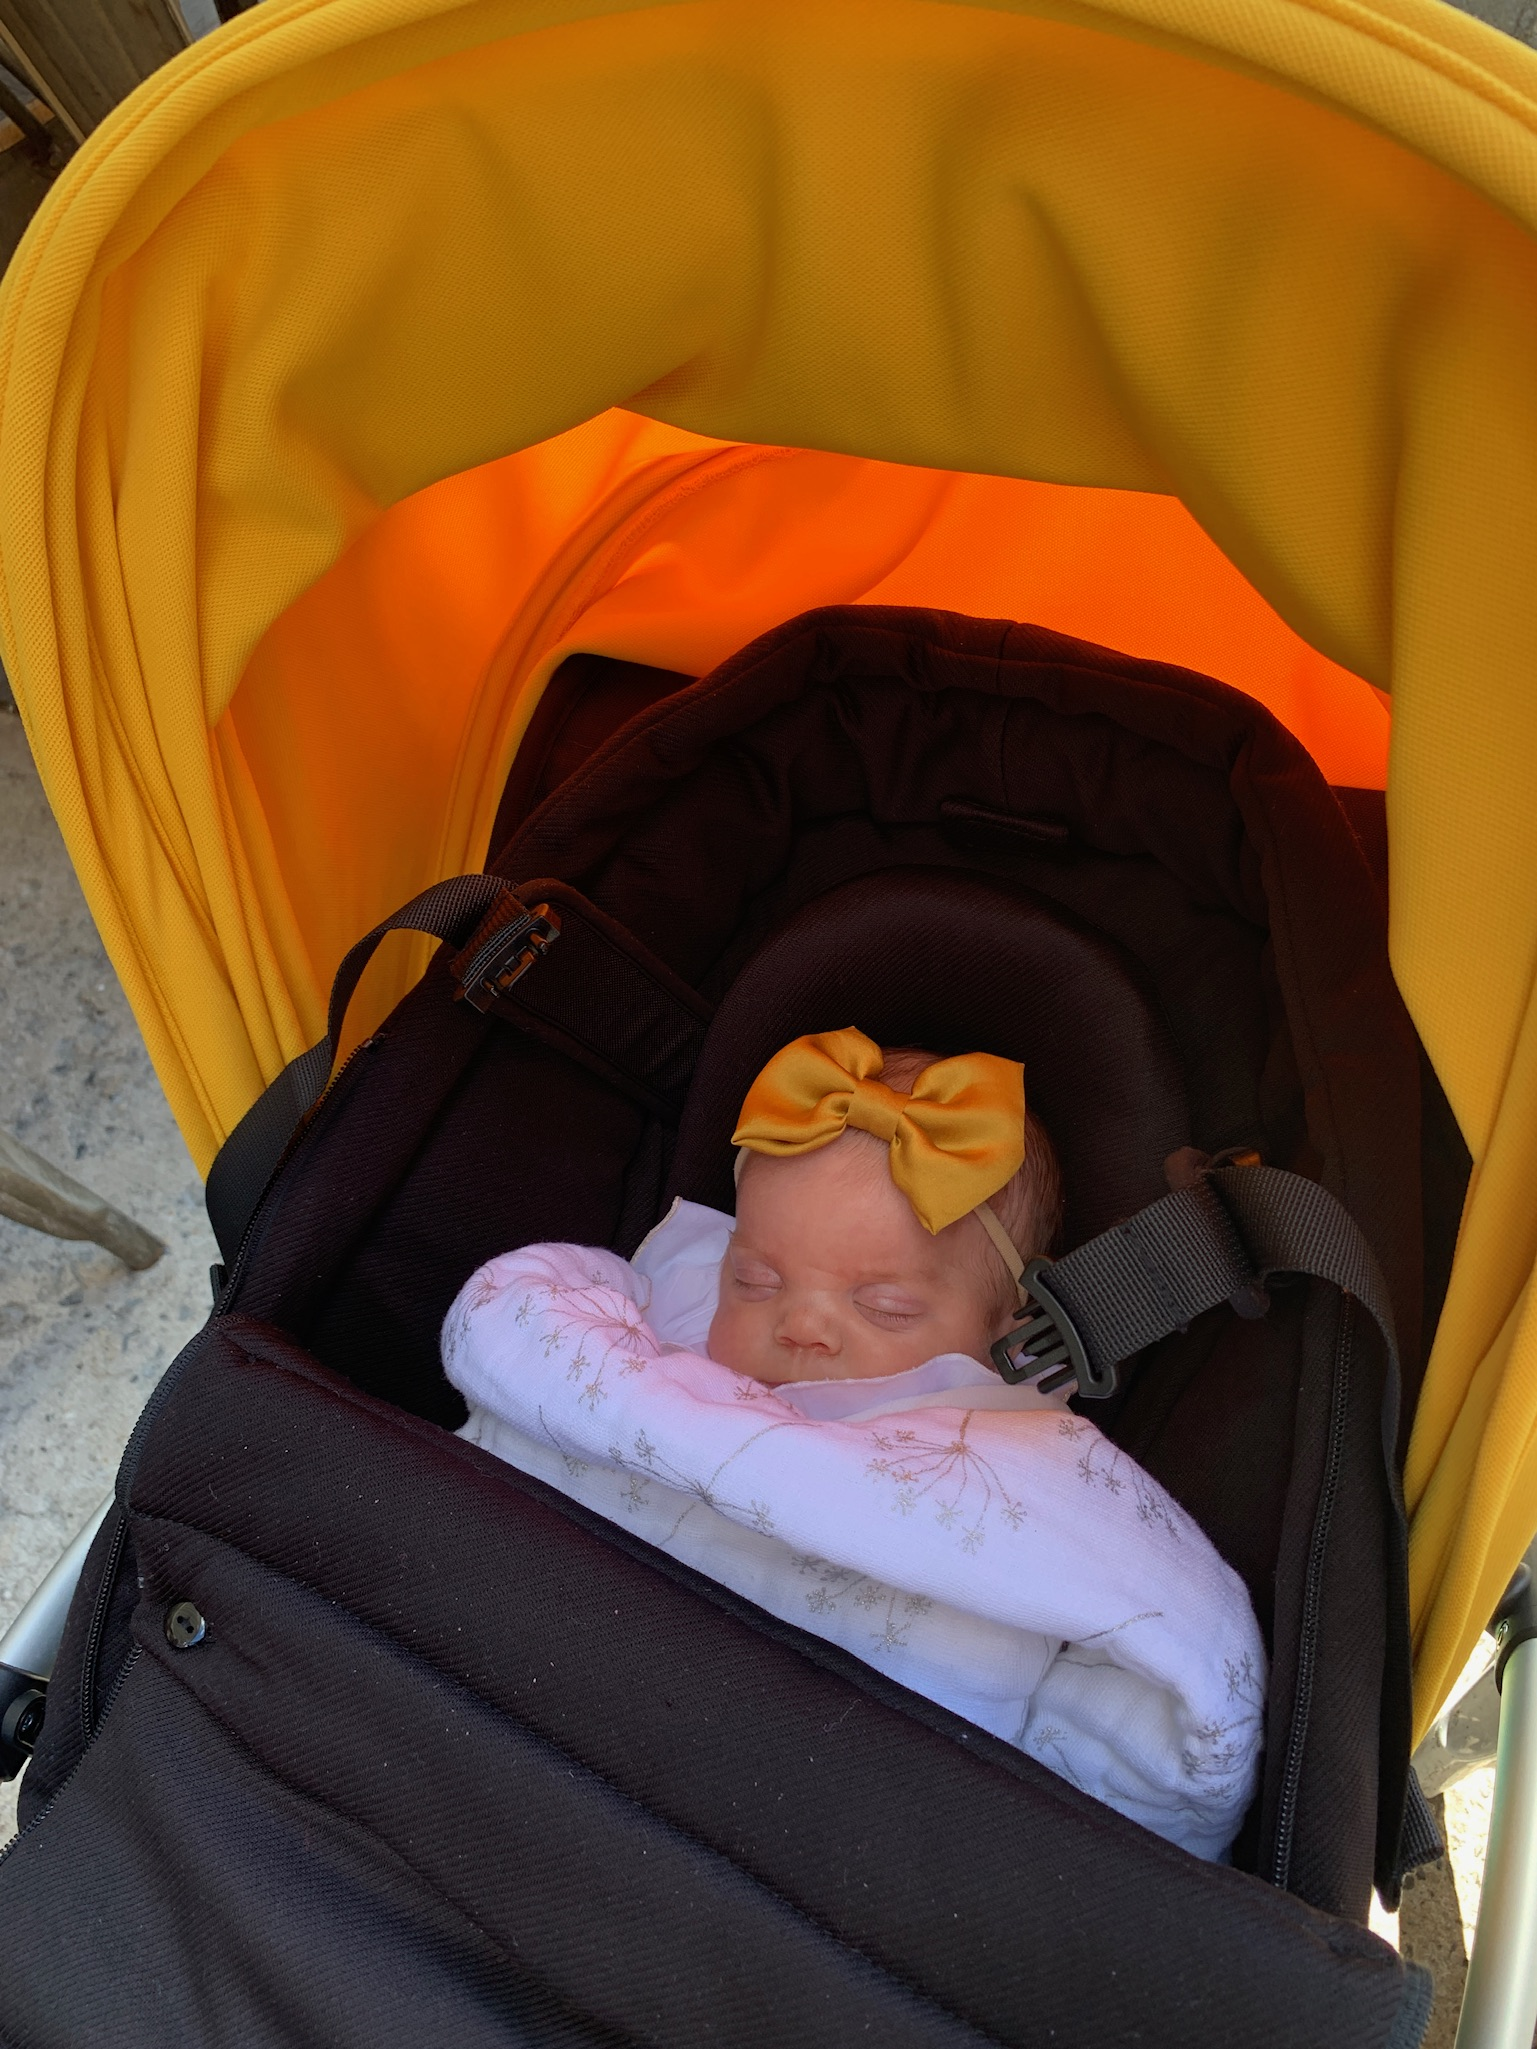 Sleeping happily in her stroller